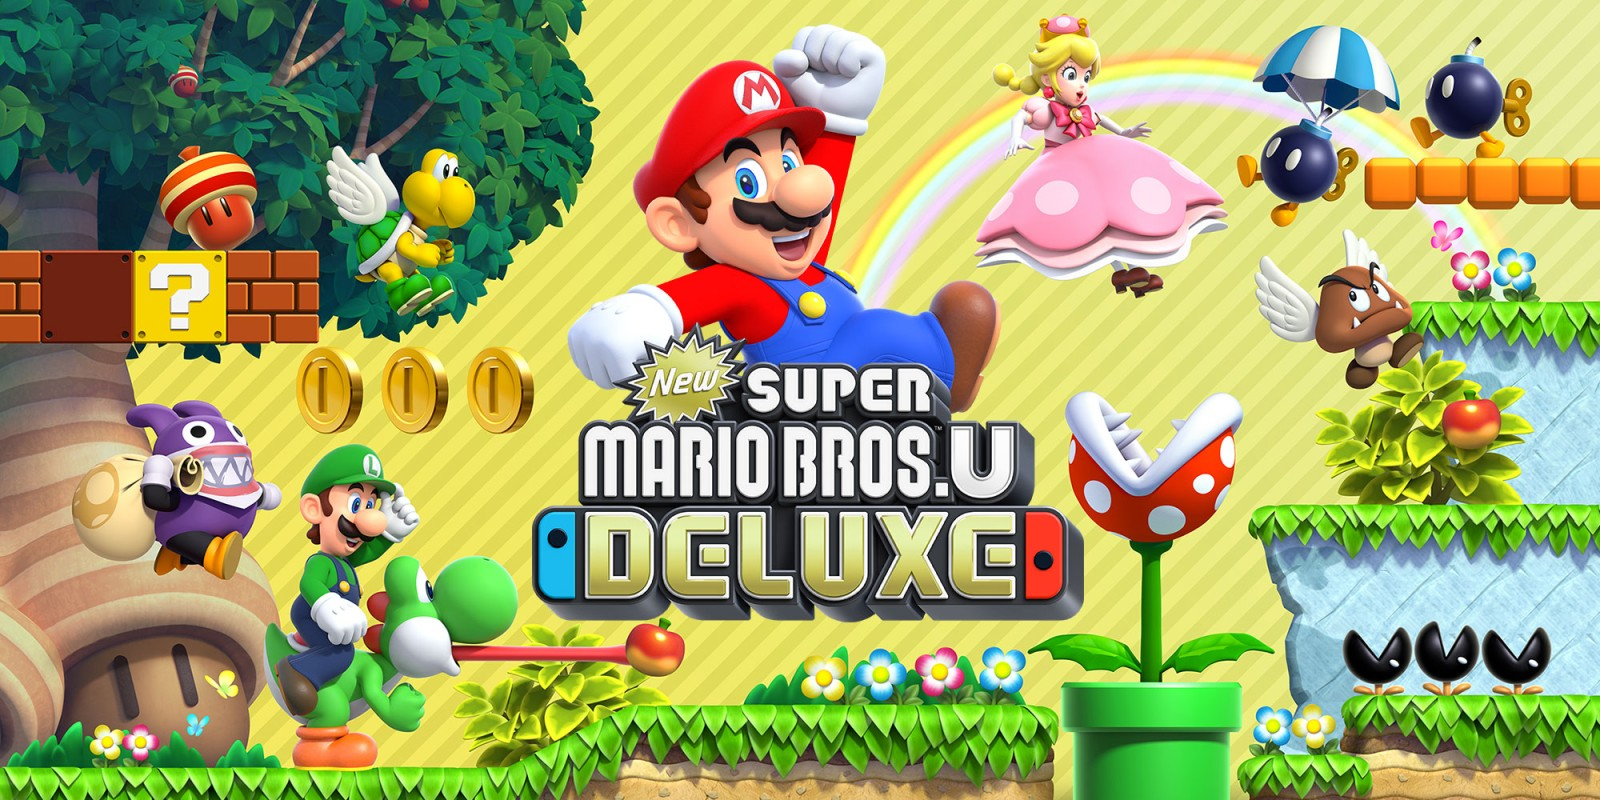 New Super Mario Bros. U Deluxe – Now Available on Nintendo Switch